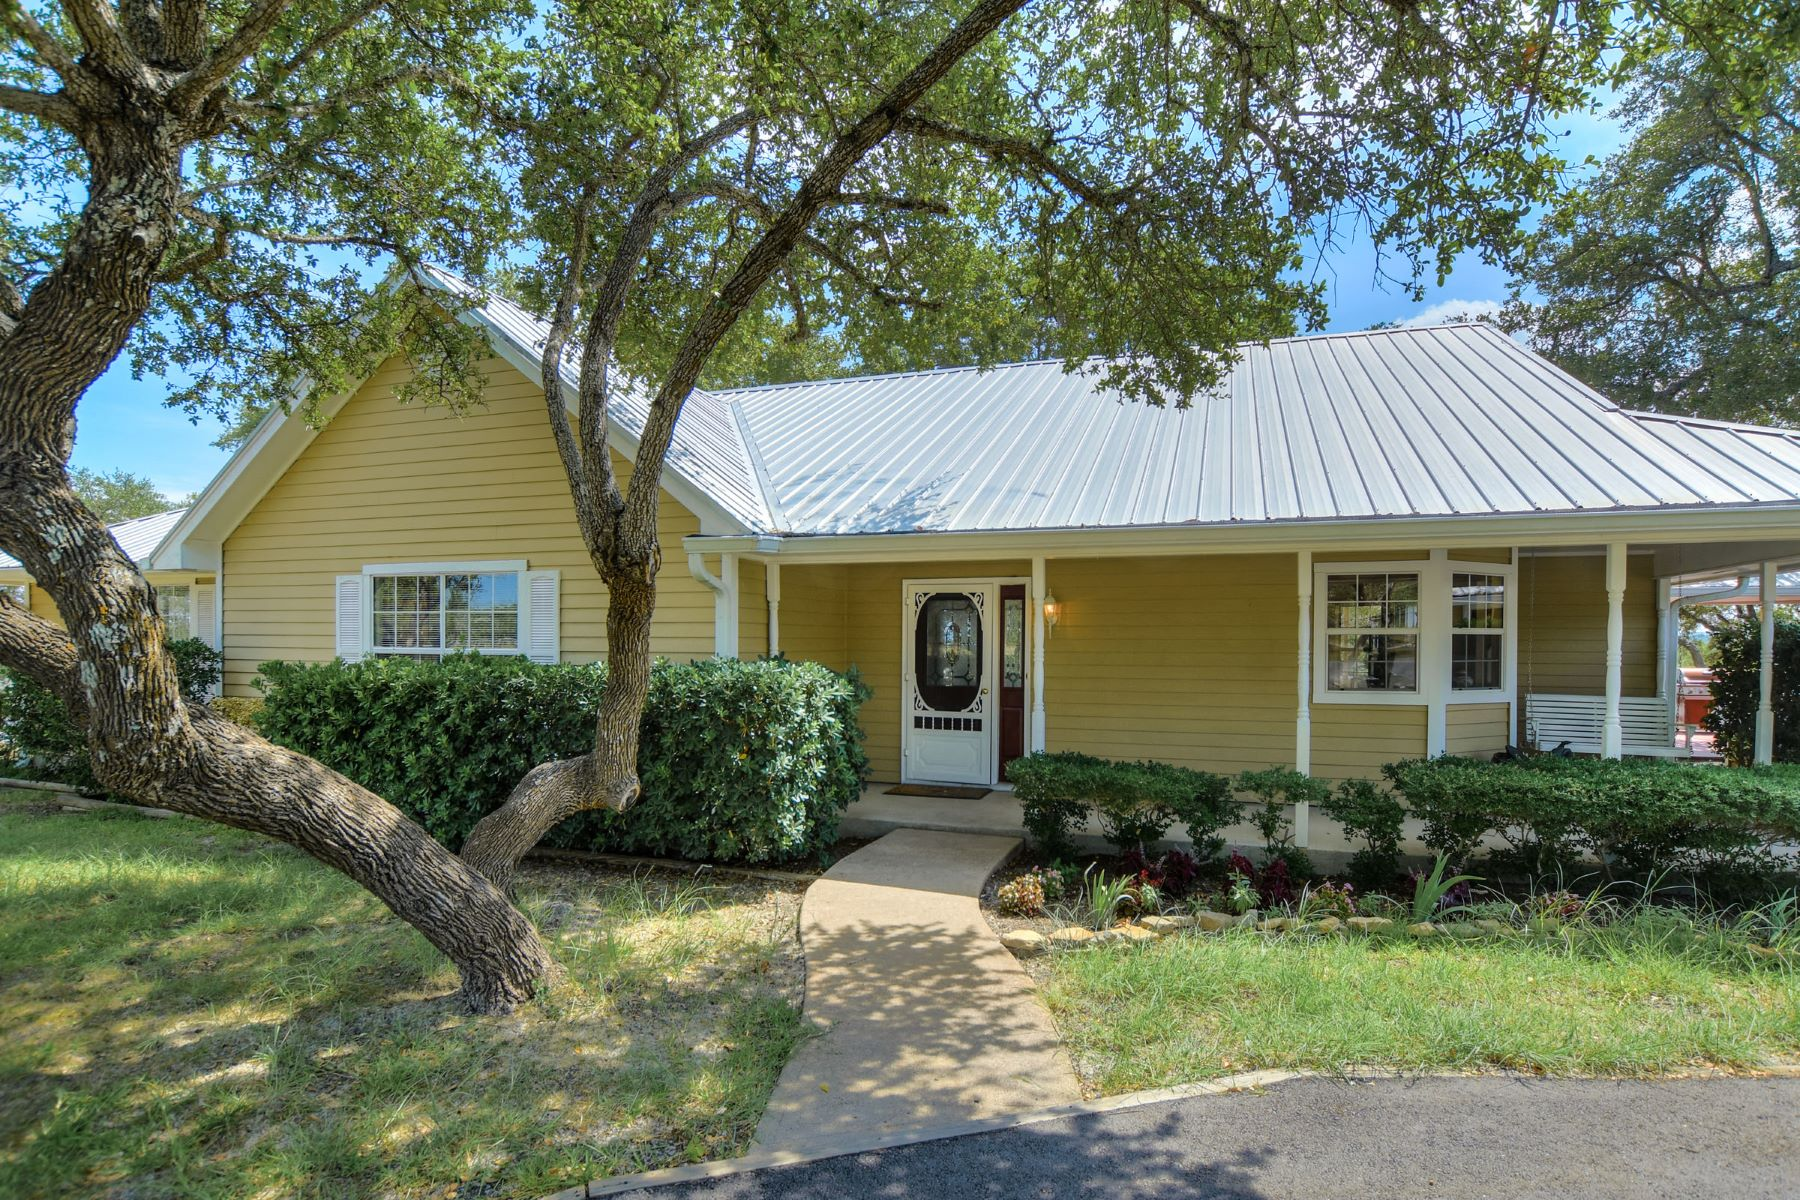 Casa Unifamiliar por un Venta en Amazing Horse Property Opportunity 5401 W Highway 290 Dripping Springs, Texas, 78620 Estados Unidos